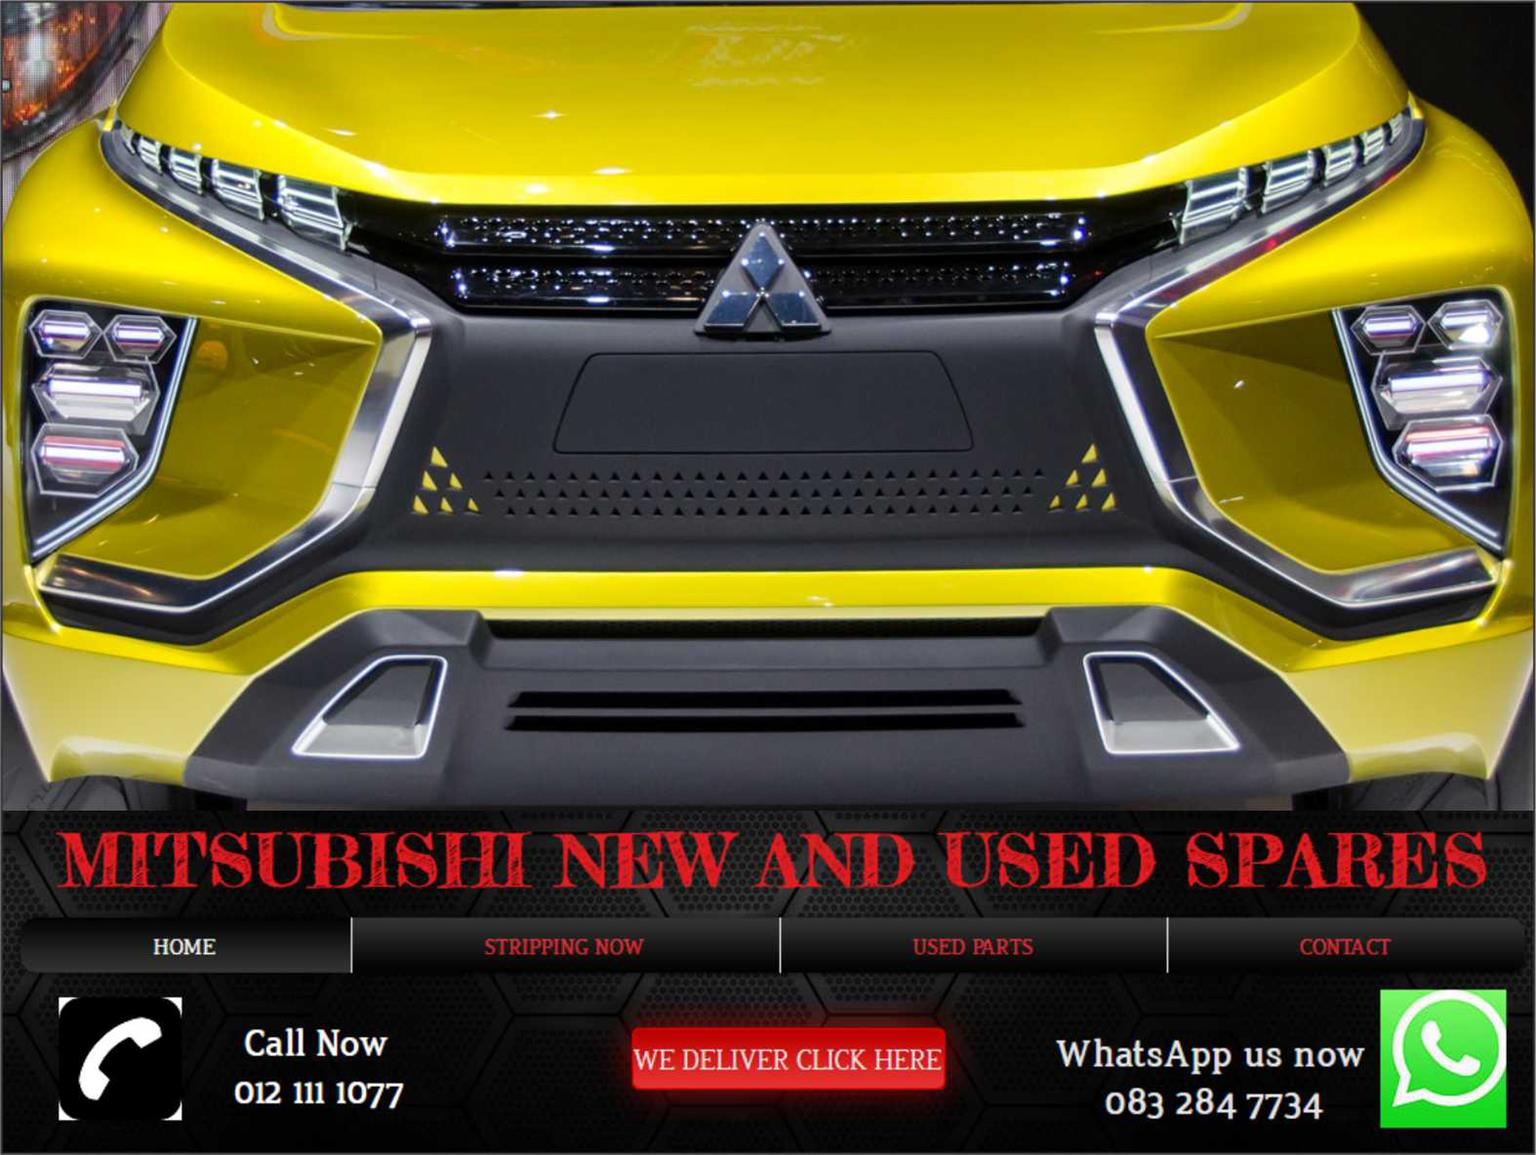 Mitsubishi used and new spares